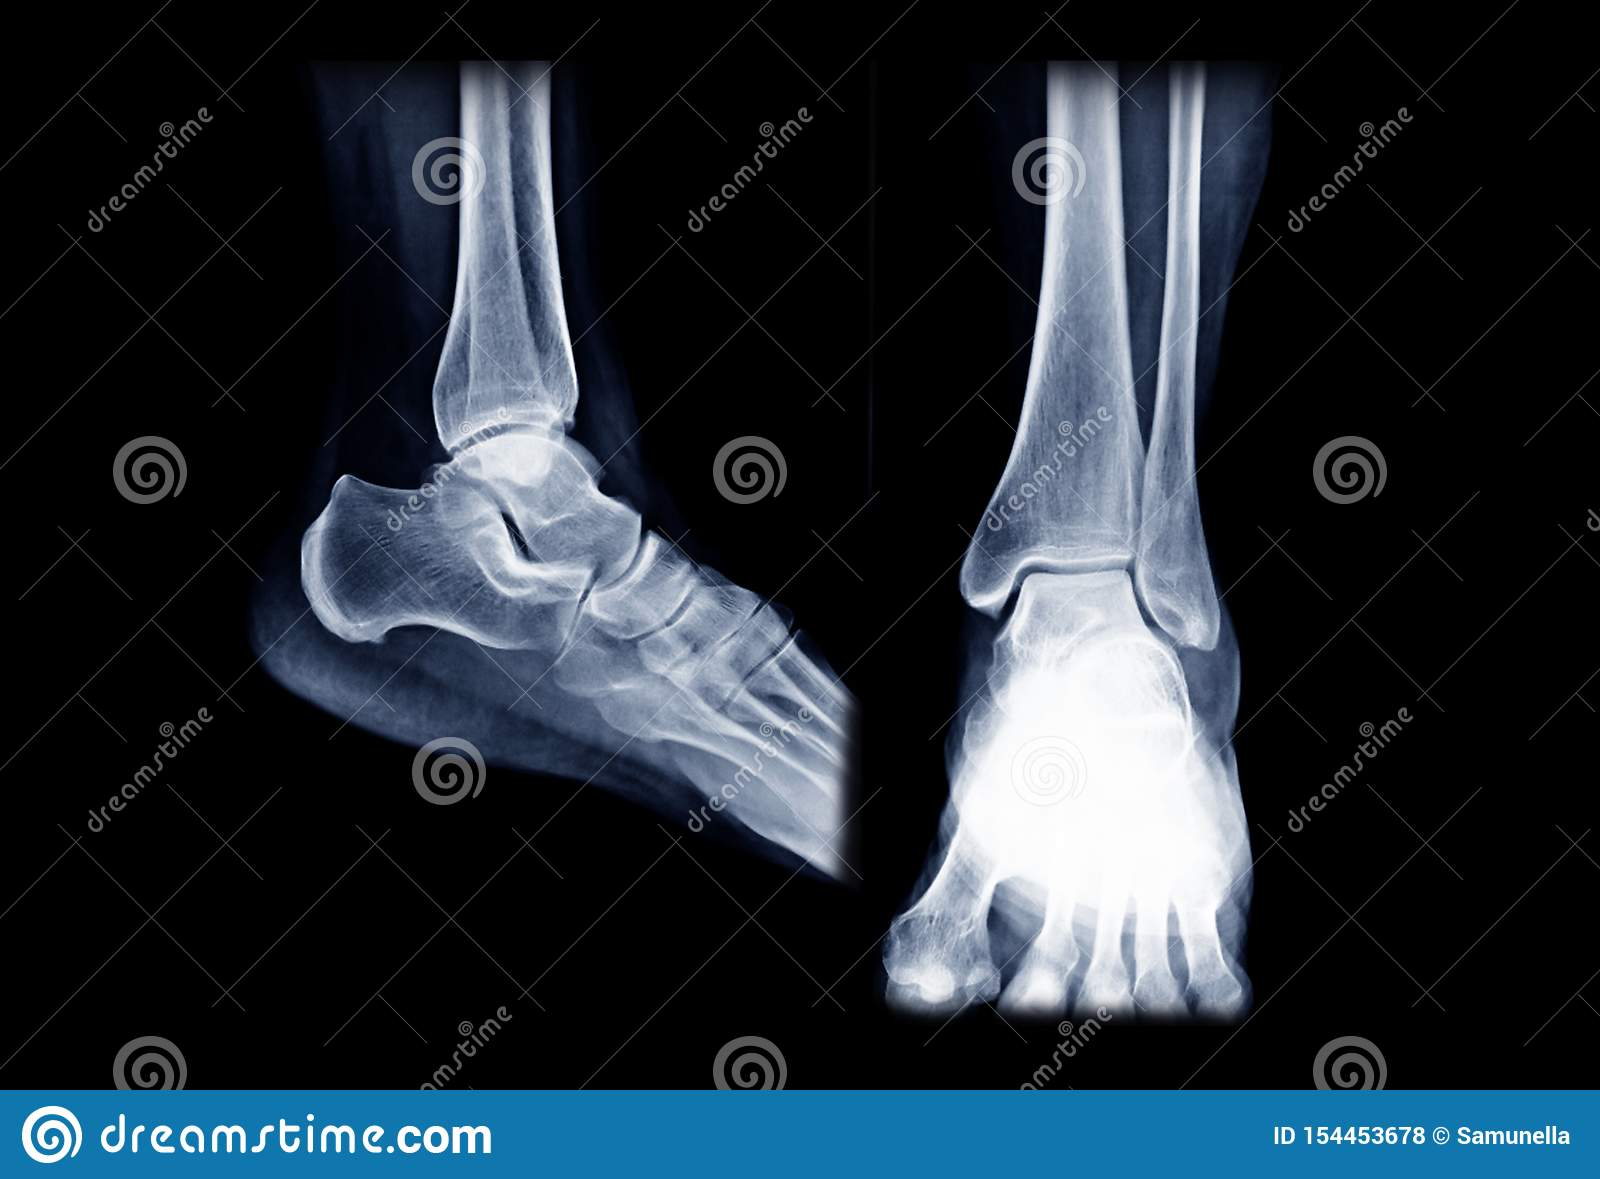 37 X Ray Foot Ap View Photos Free Royalty Free Stock Photos From Dreamstime